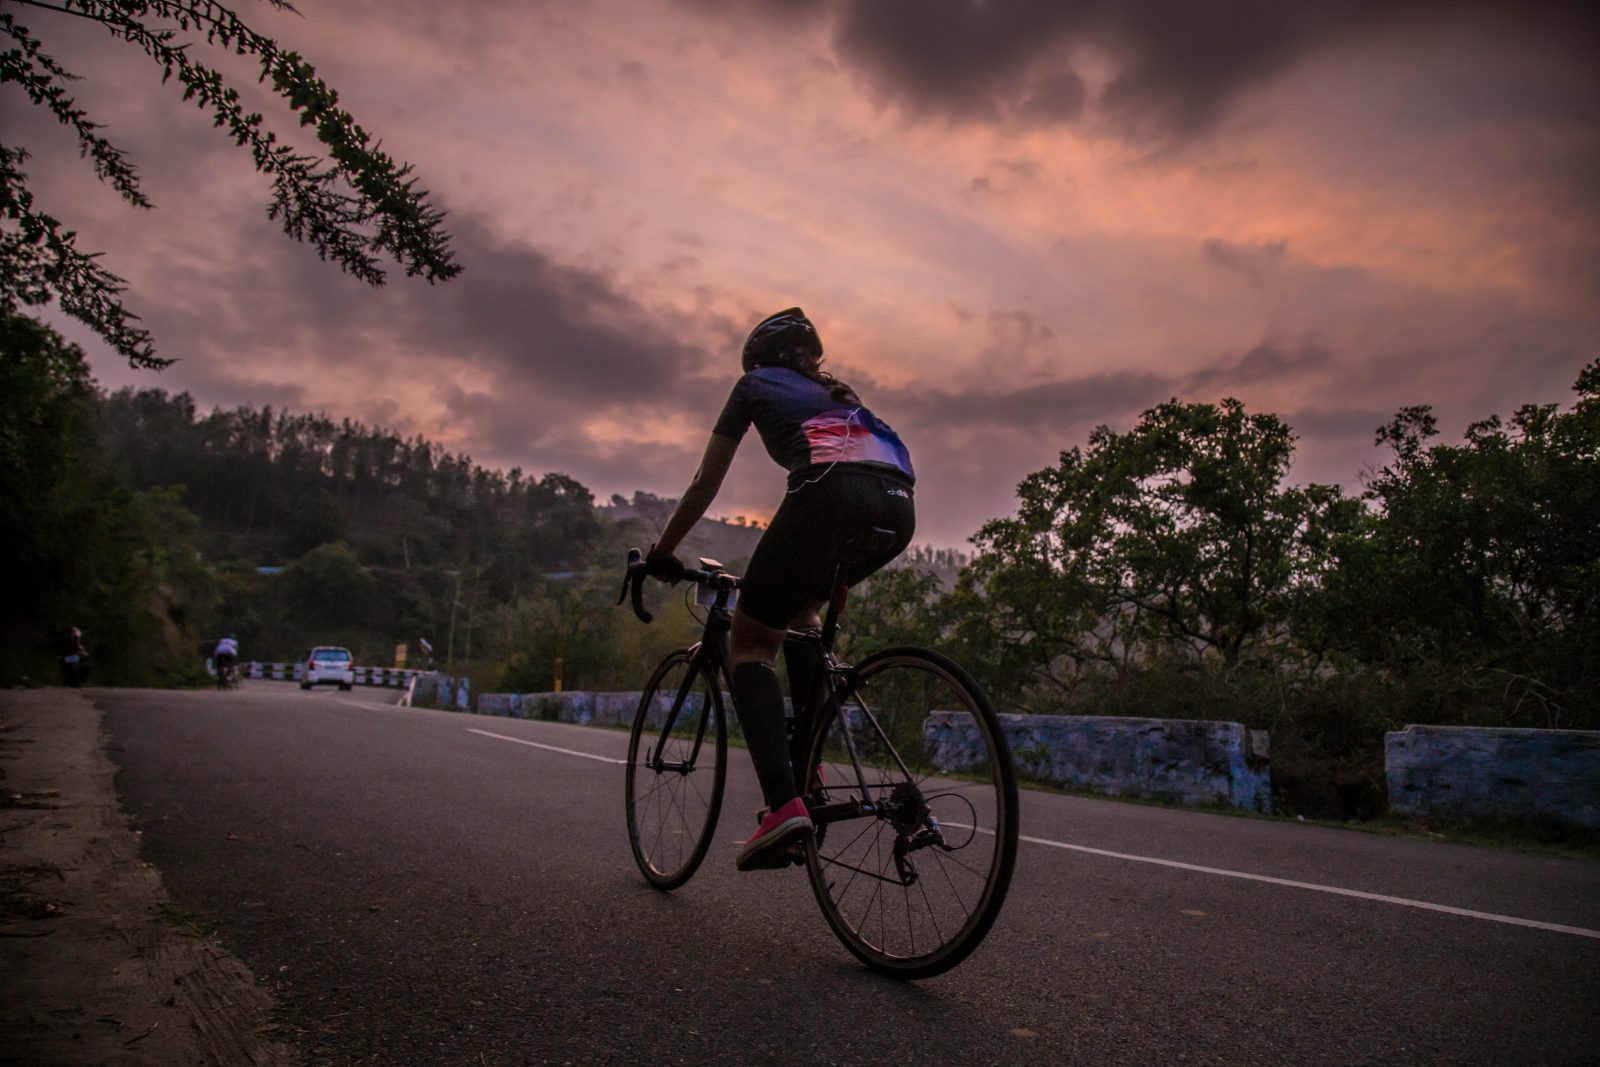 Home Roads Podcast Talks to Pro Cyclists as They Ride Their Favorite Routes 4